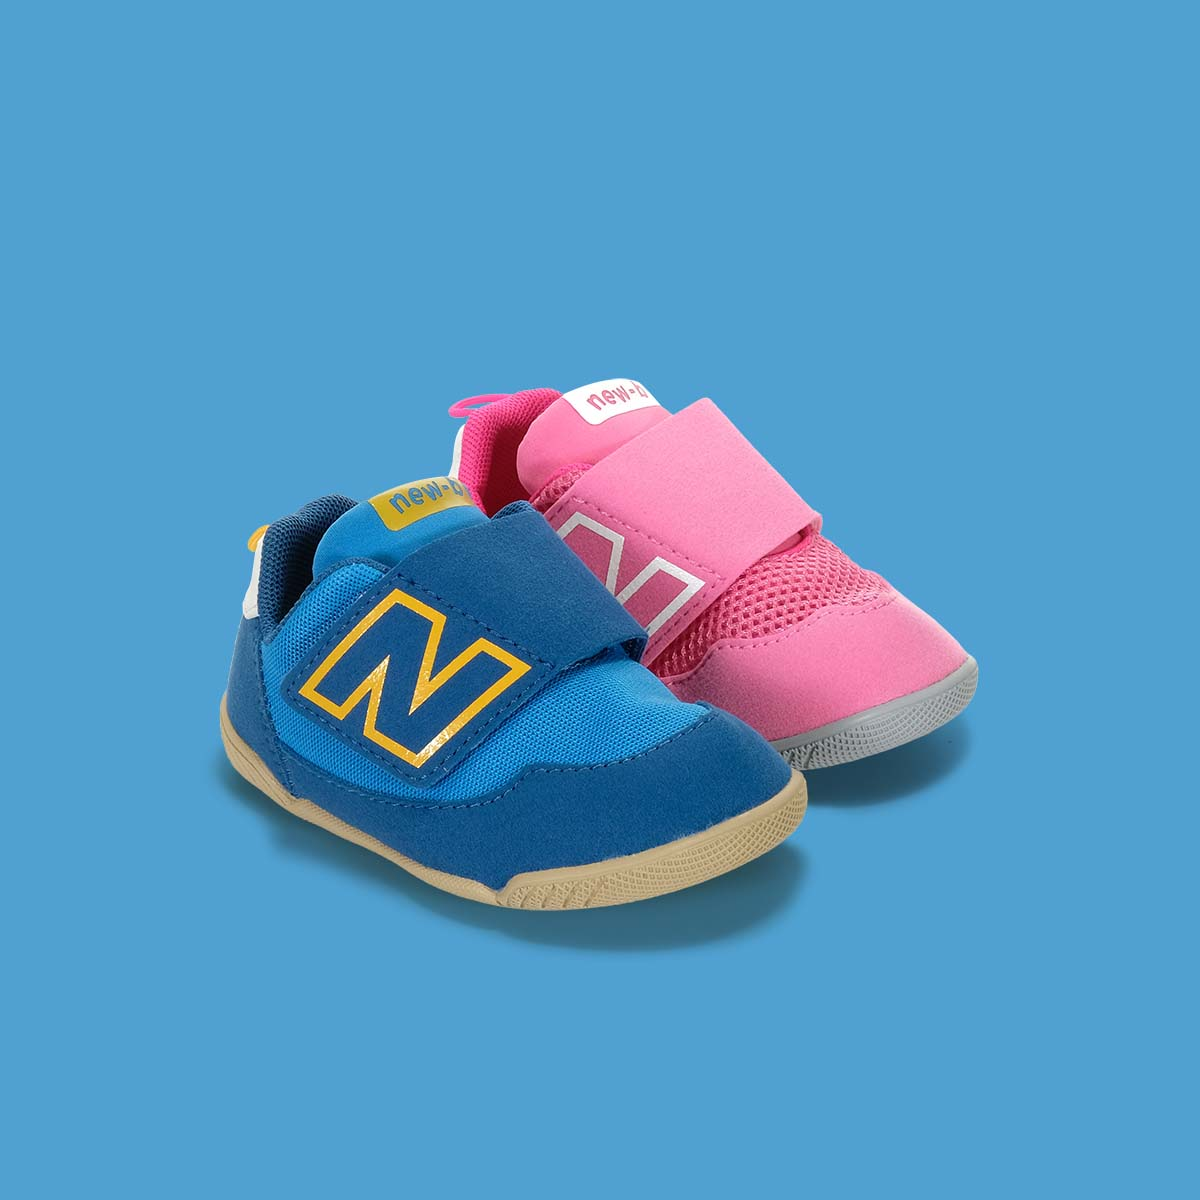 New Balance toddler's shoes